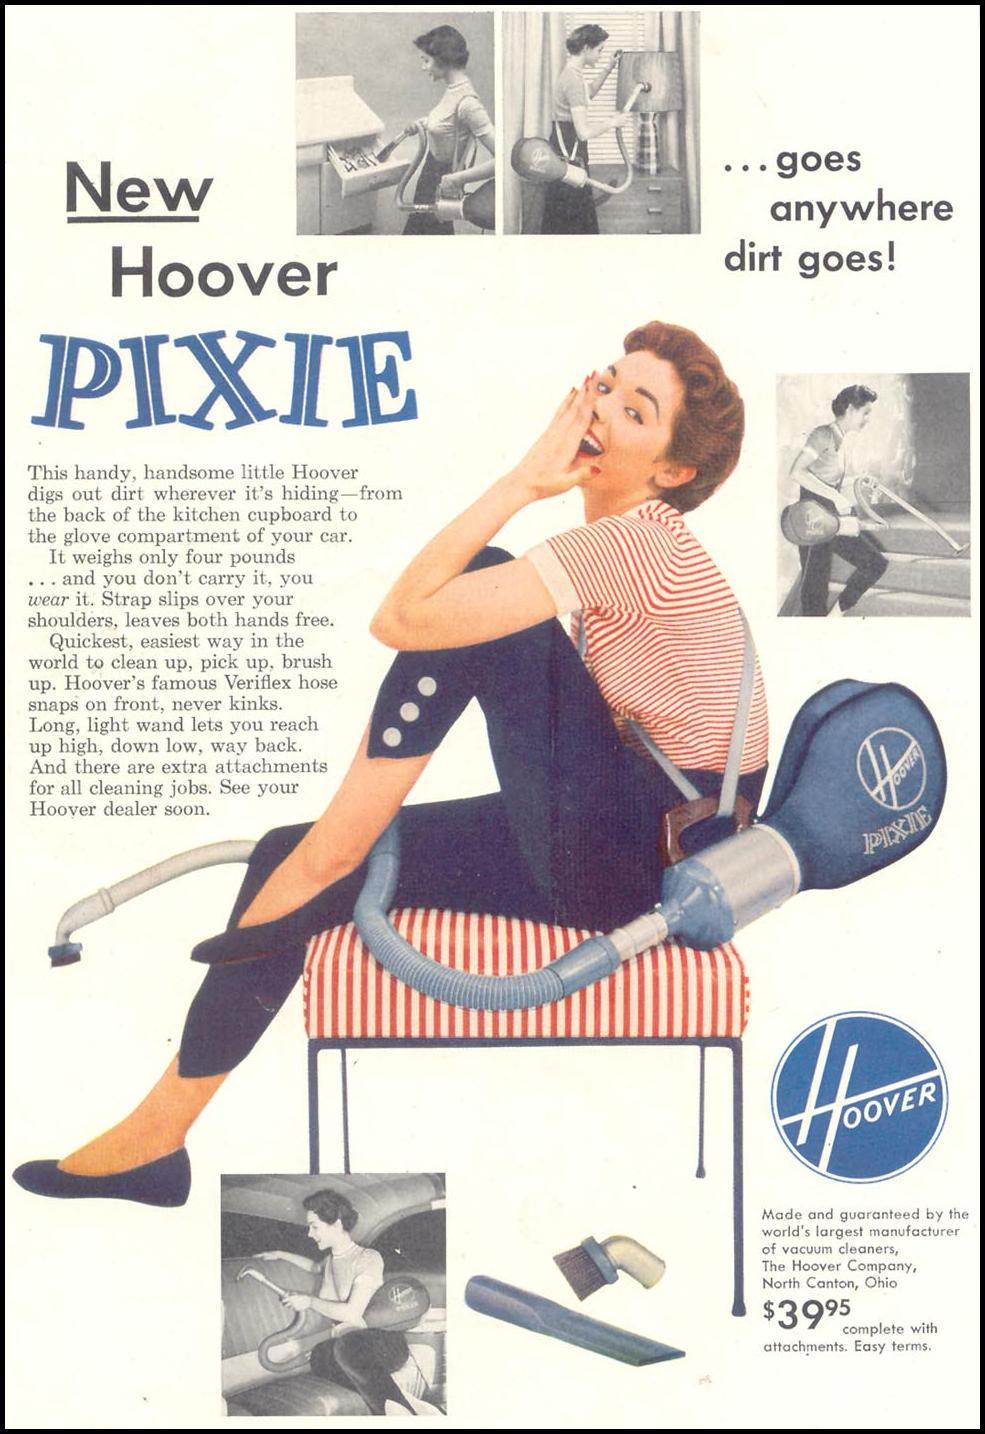 HOOVER PIXIE VACUUM CLEANER SATURDAY EVENING POST 04/09/1955 p. 71